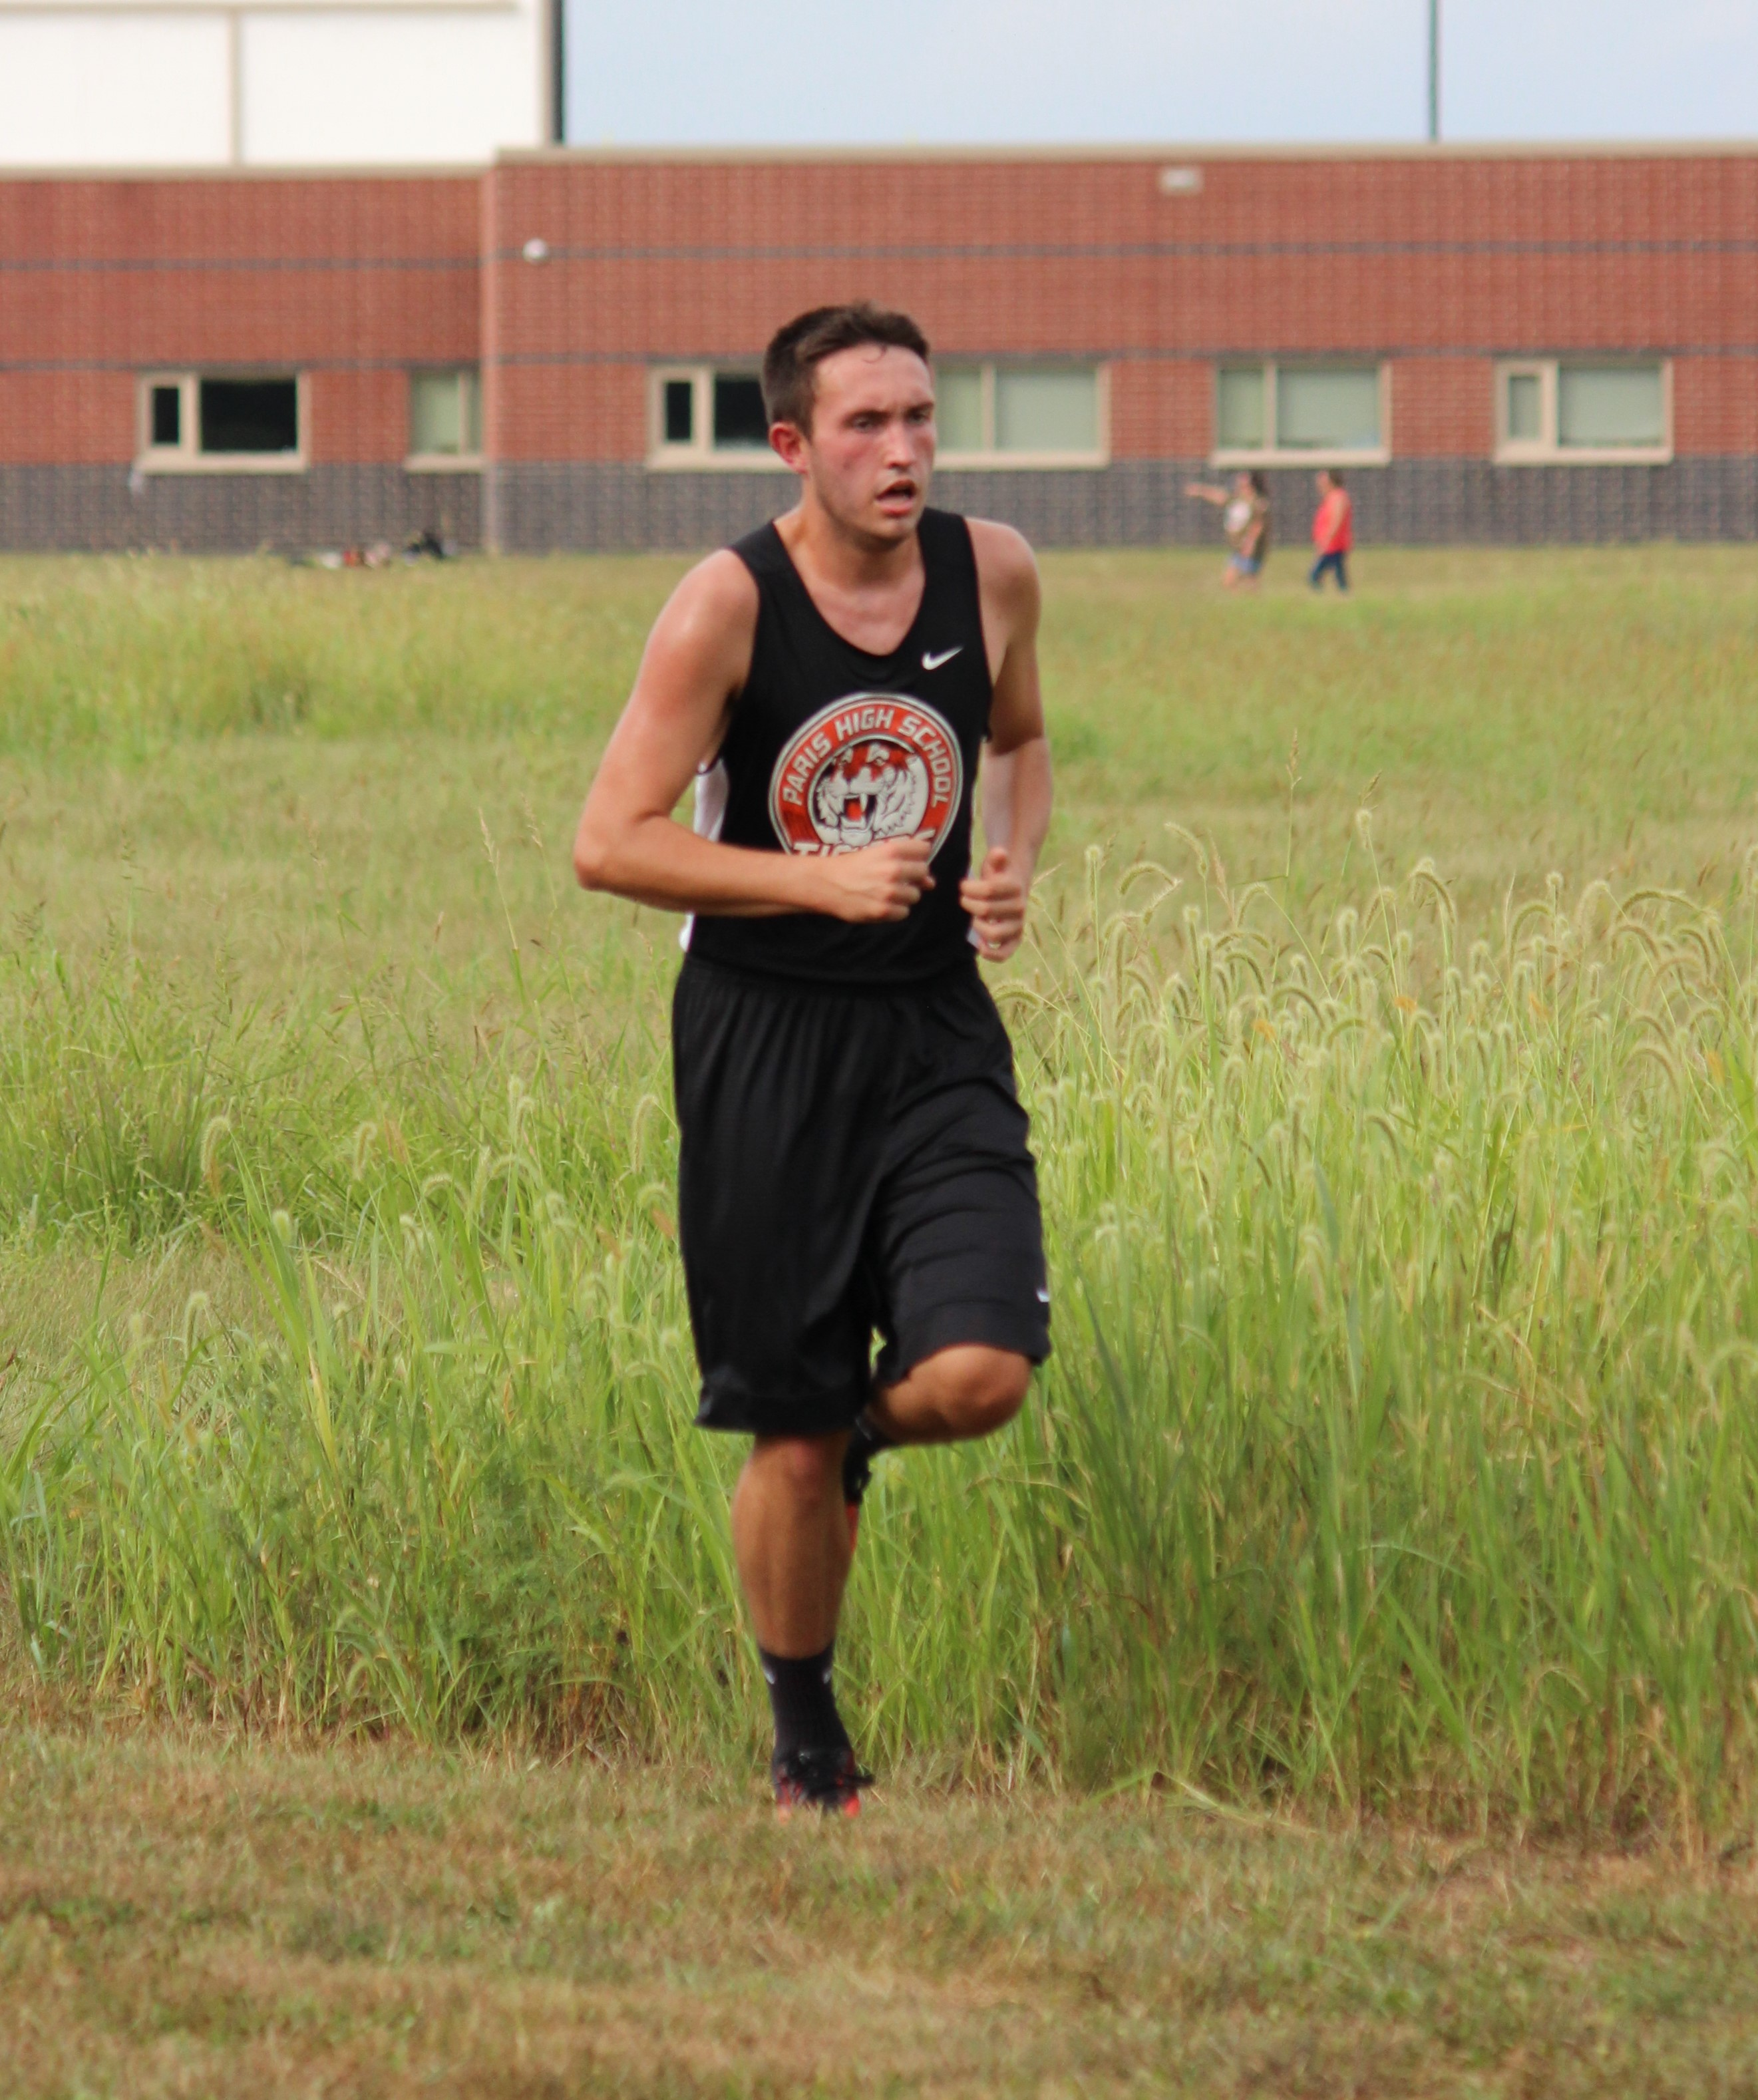 1602690148-xc_jeffery_bennett_action_photo_2020